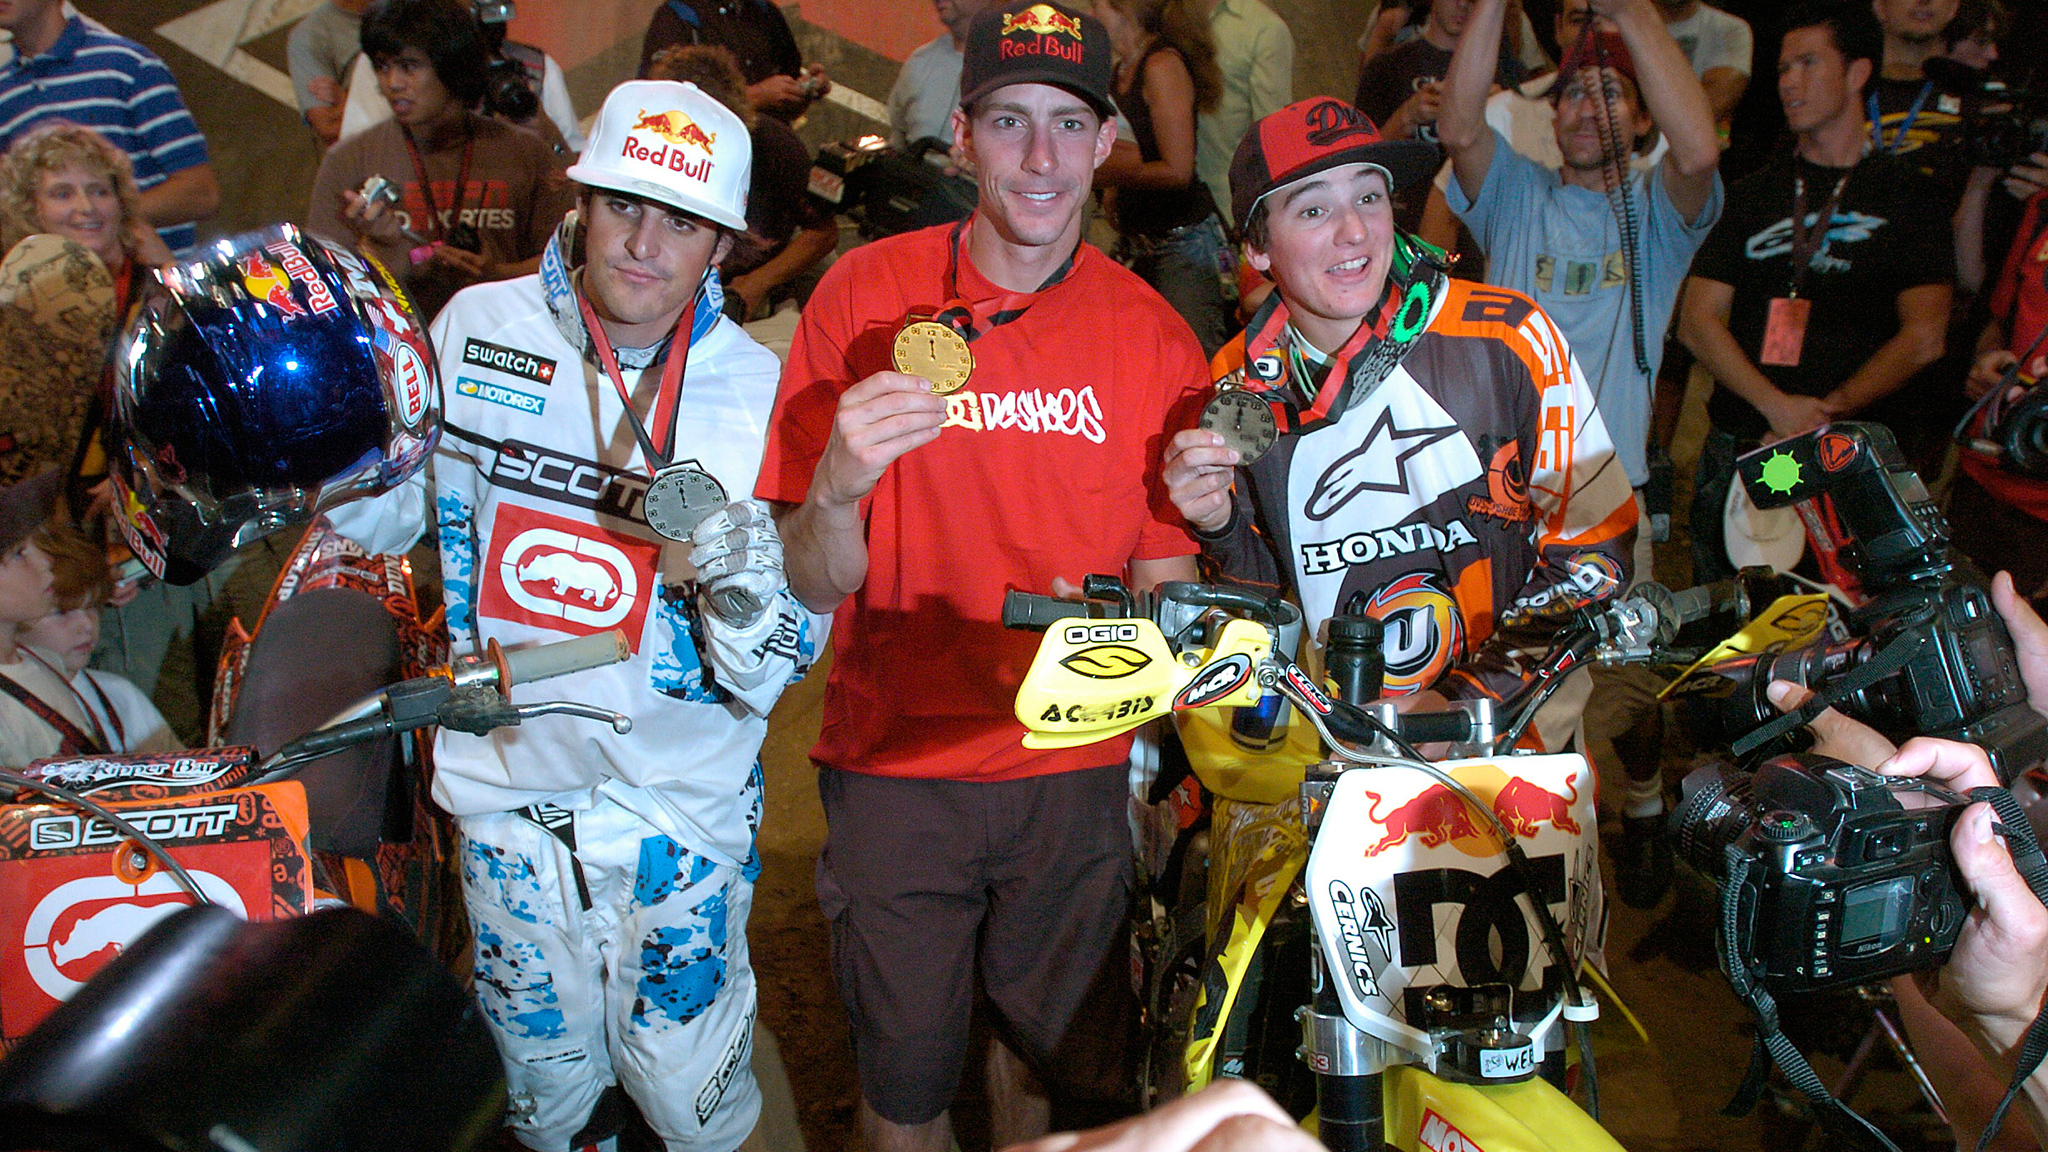 Moto-X Best Trick winners stand on the X Games L.A. podium in 2006: From left, silver medalist Mat Rebeaud, gold medalist Pastrana and bronze medalist Blake Williams.